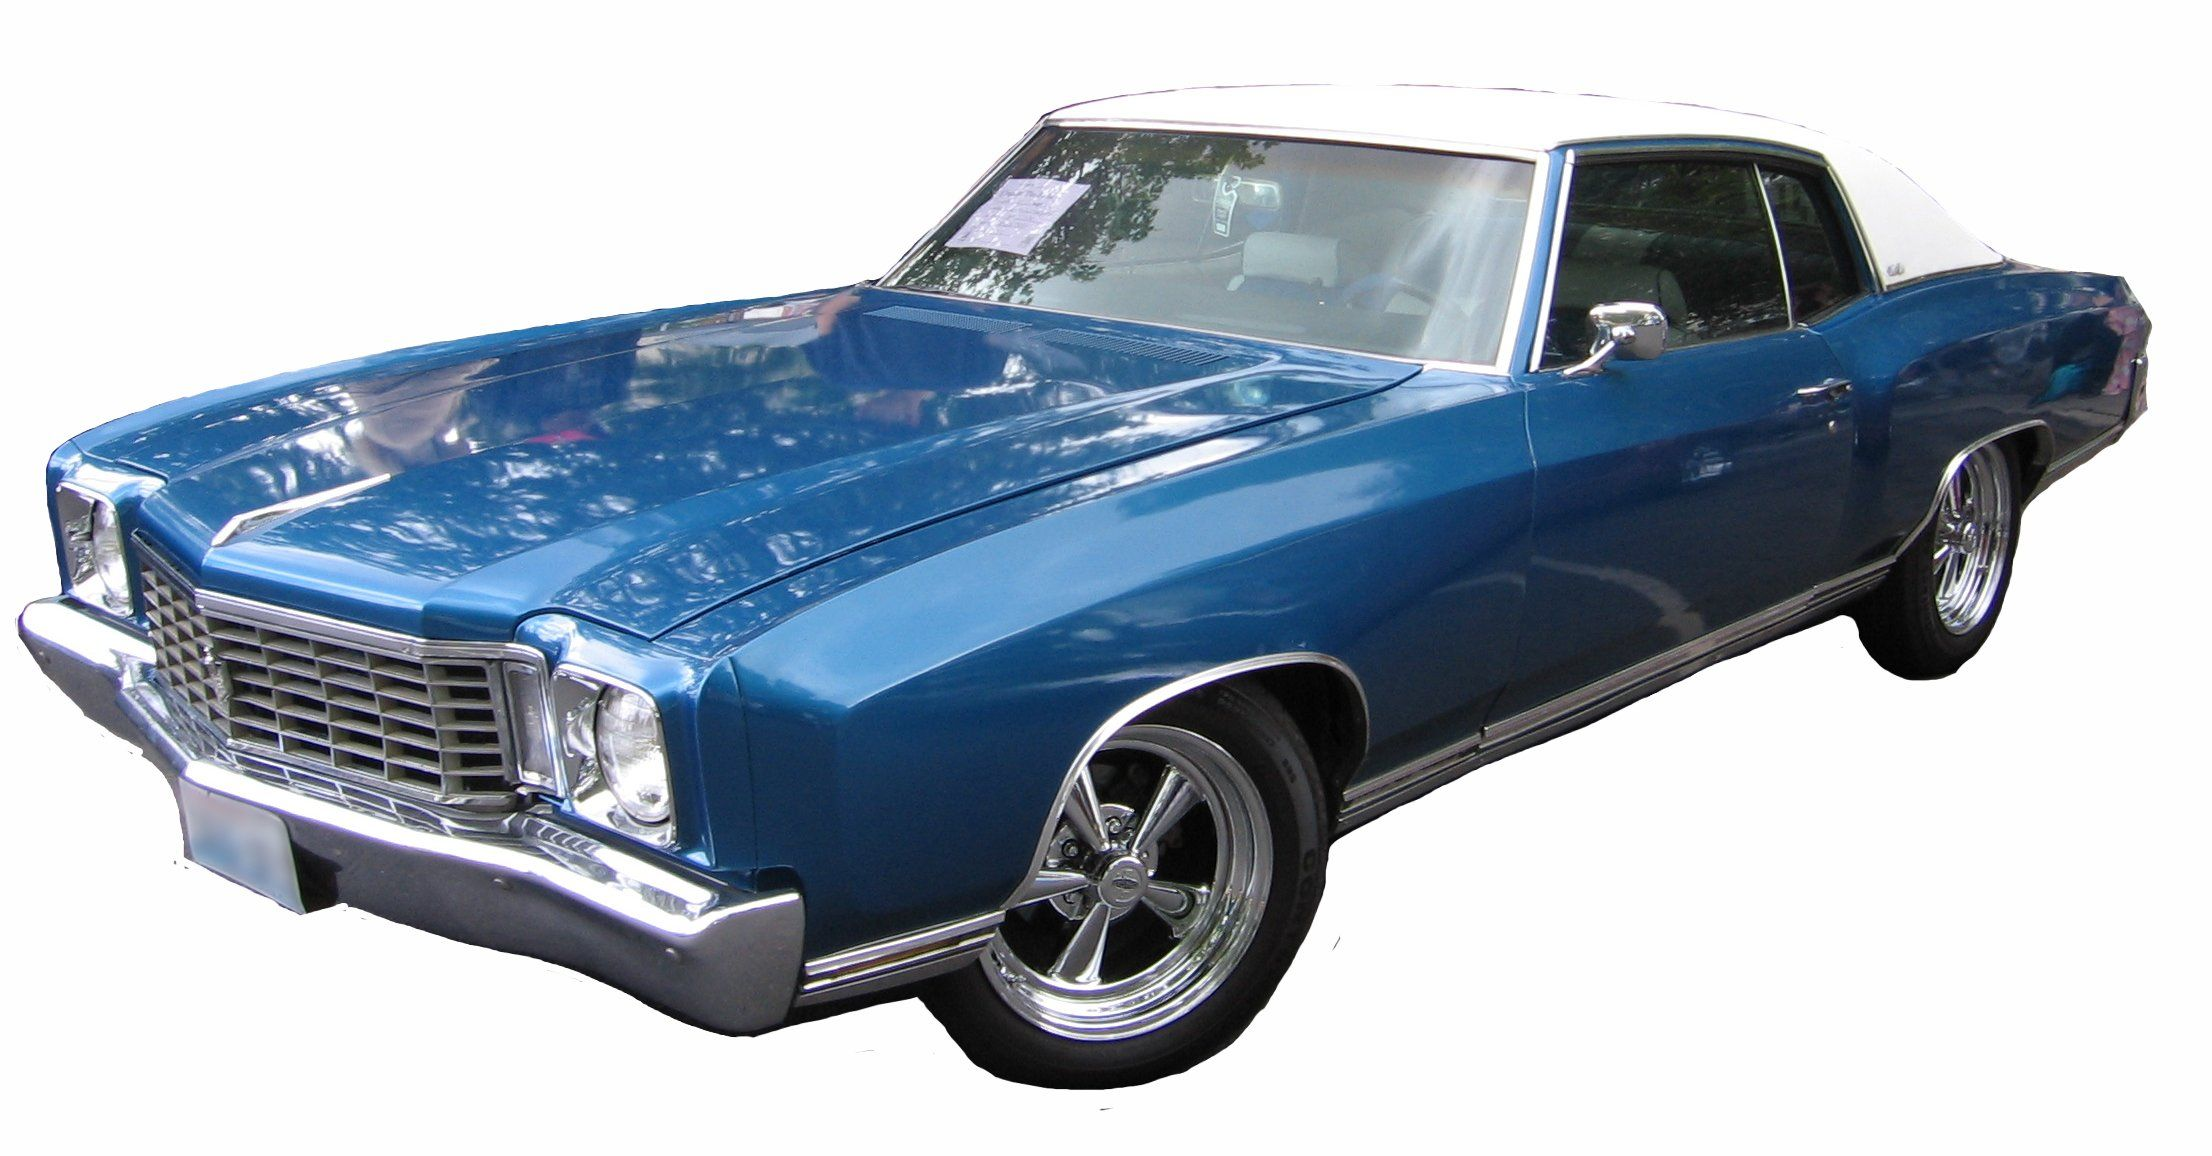 1972 Chevy Monte Carlo could do without the soft top, cant wait to ...